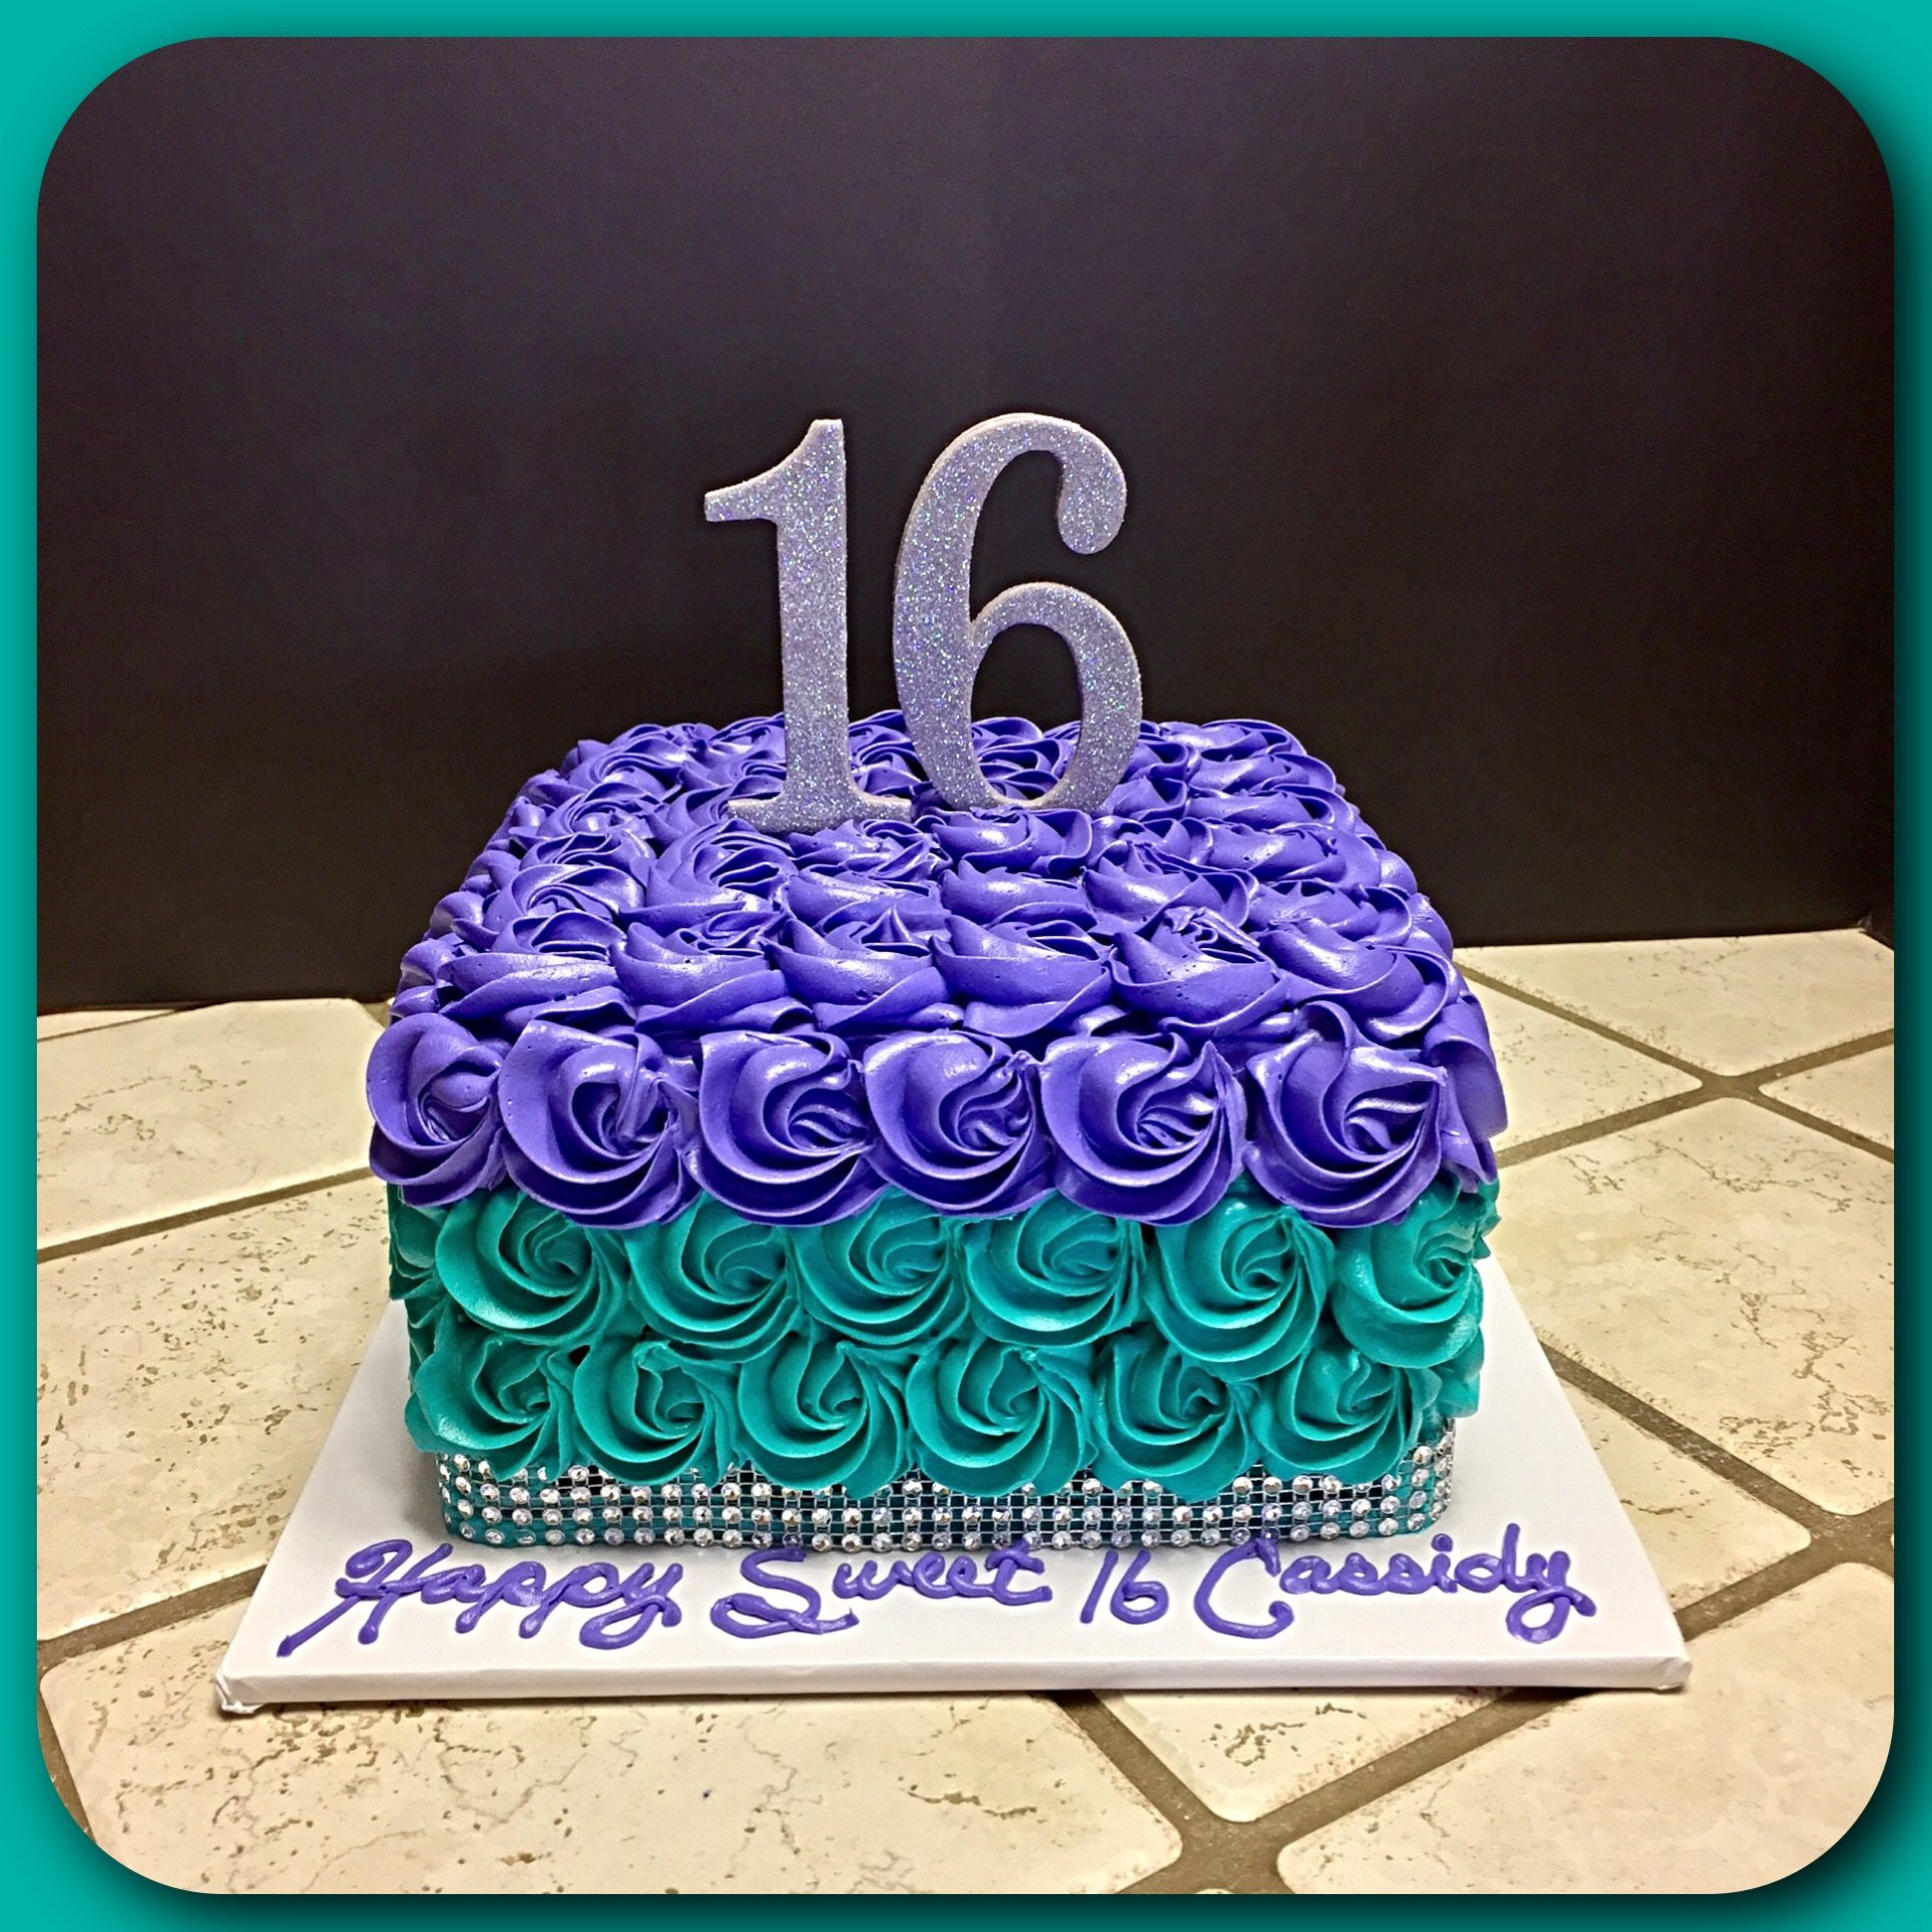 A Rosette Cake In Purple And Turquoise